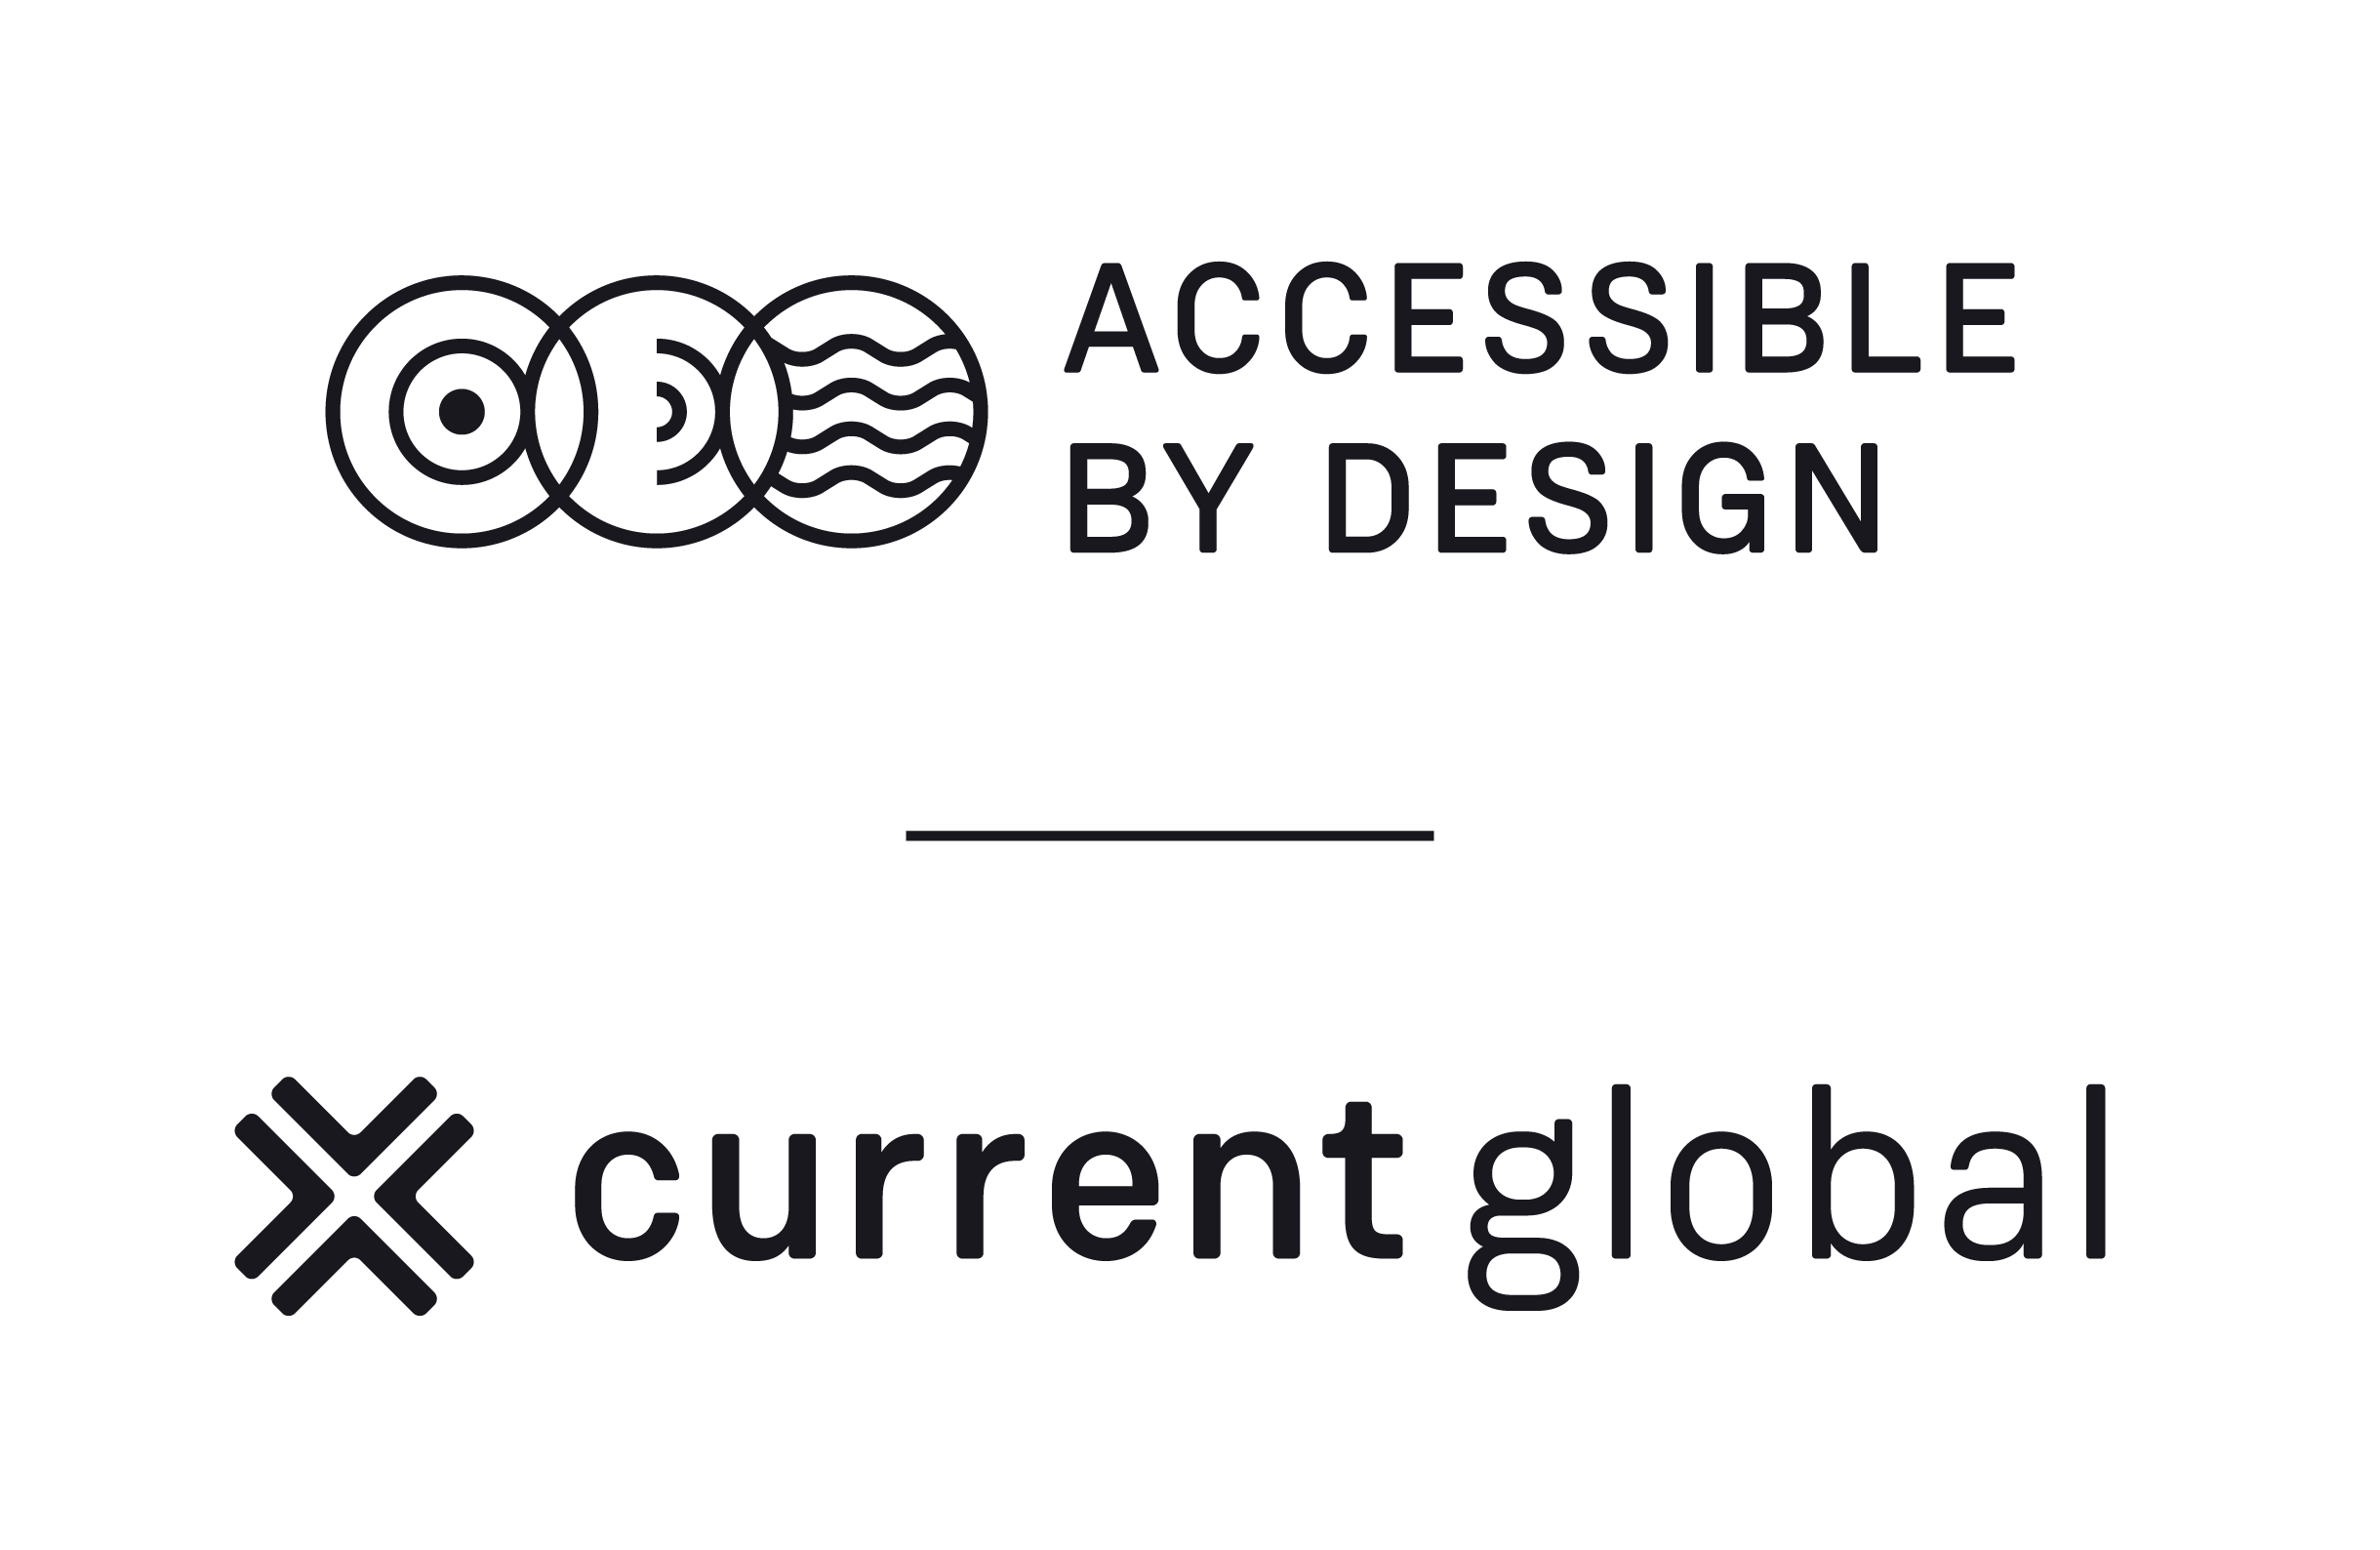 Logo of Current Global's Accessible by Design offer.